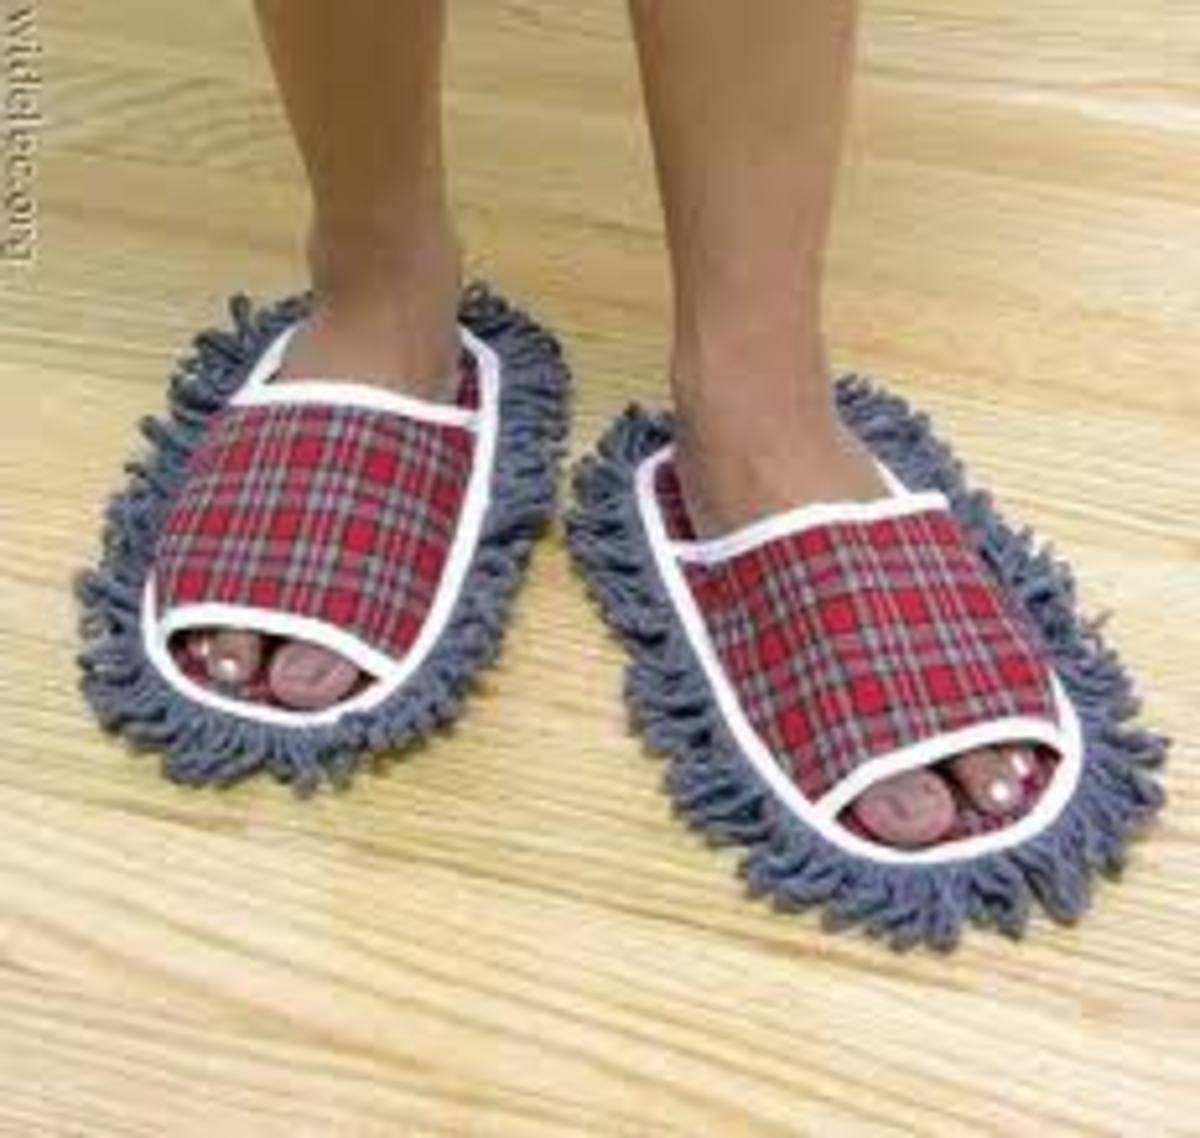 Thank goodness mop slippers weren't suppressed or my kitchen floor would never get clean.